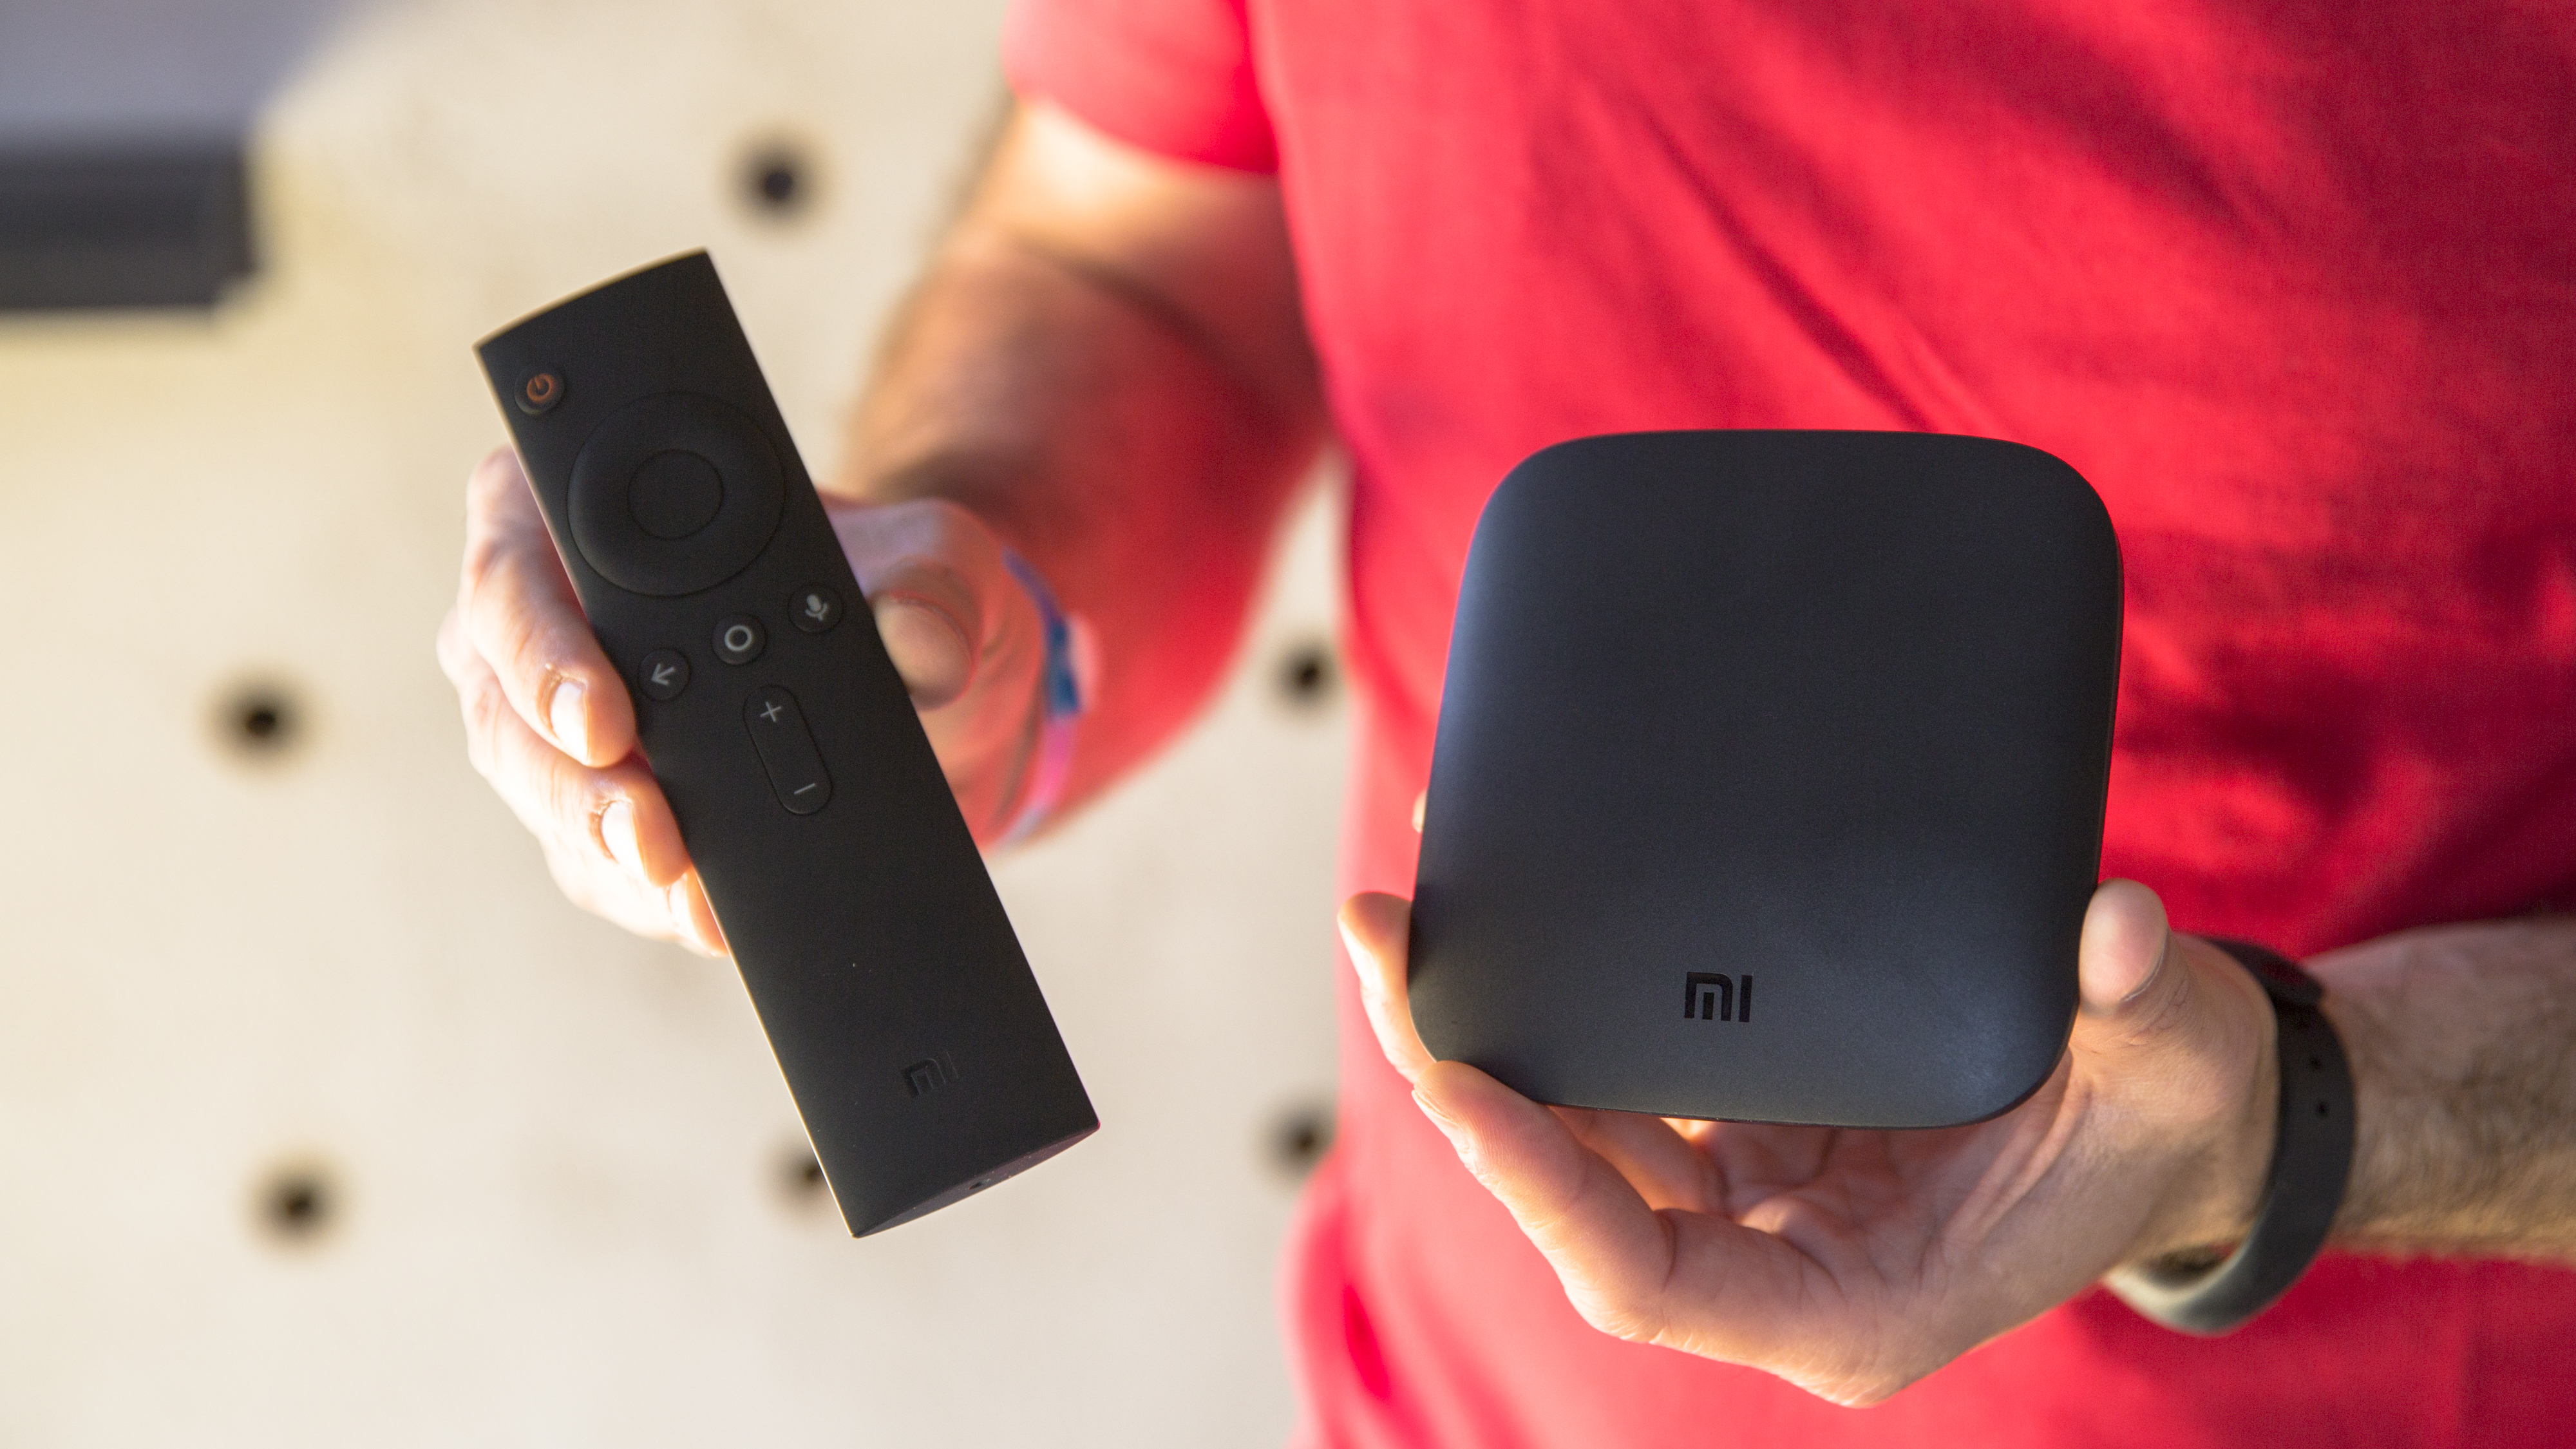 google-io-2016-xiaomi-mi-set-top-android-tv-box-8851.jpg